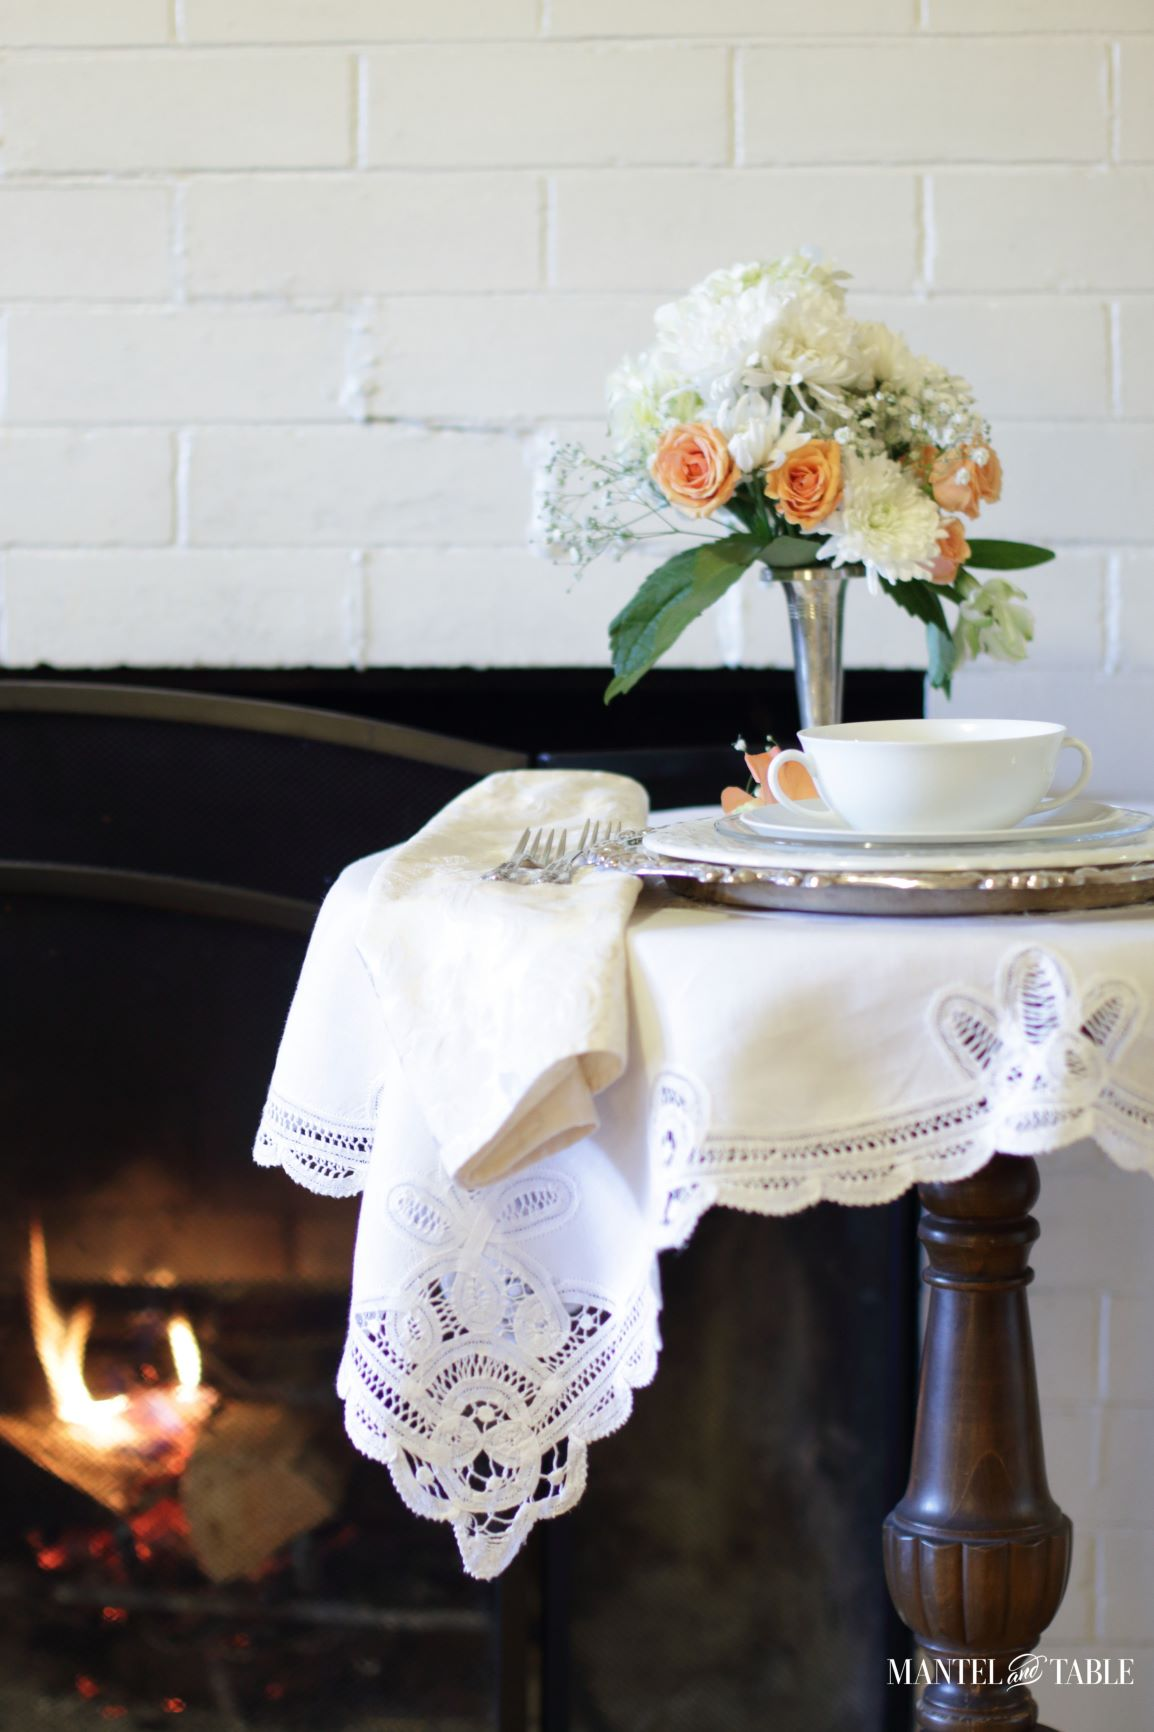 Table Setting for One ~ partial tabletop view with fire